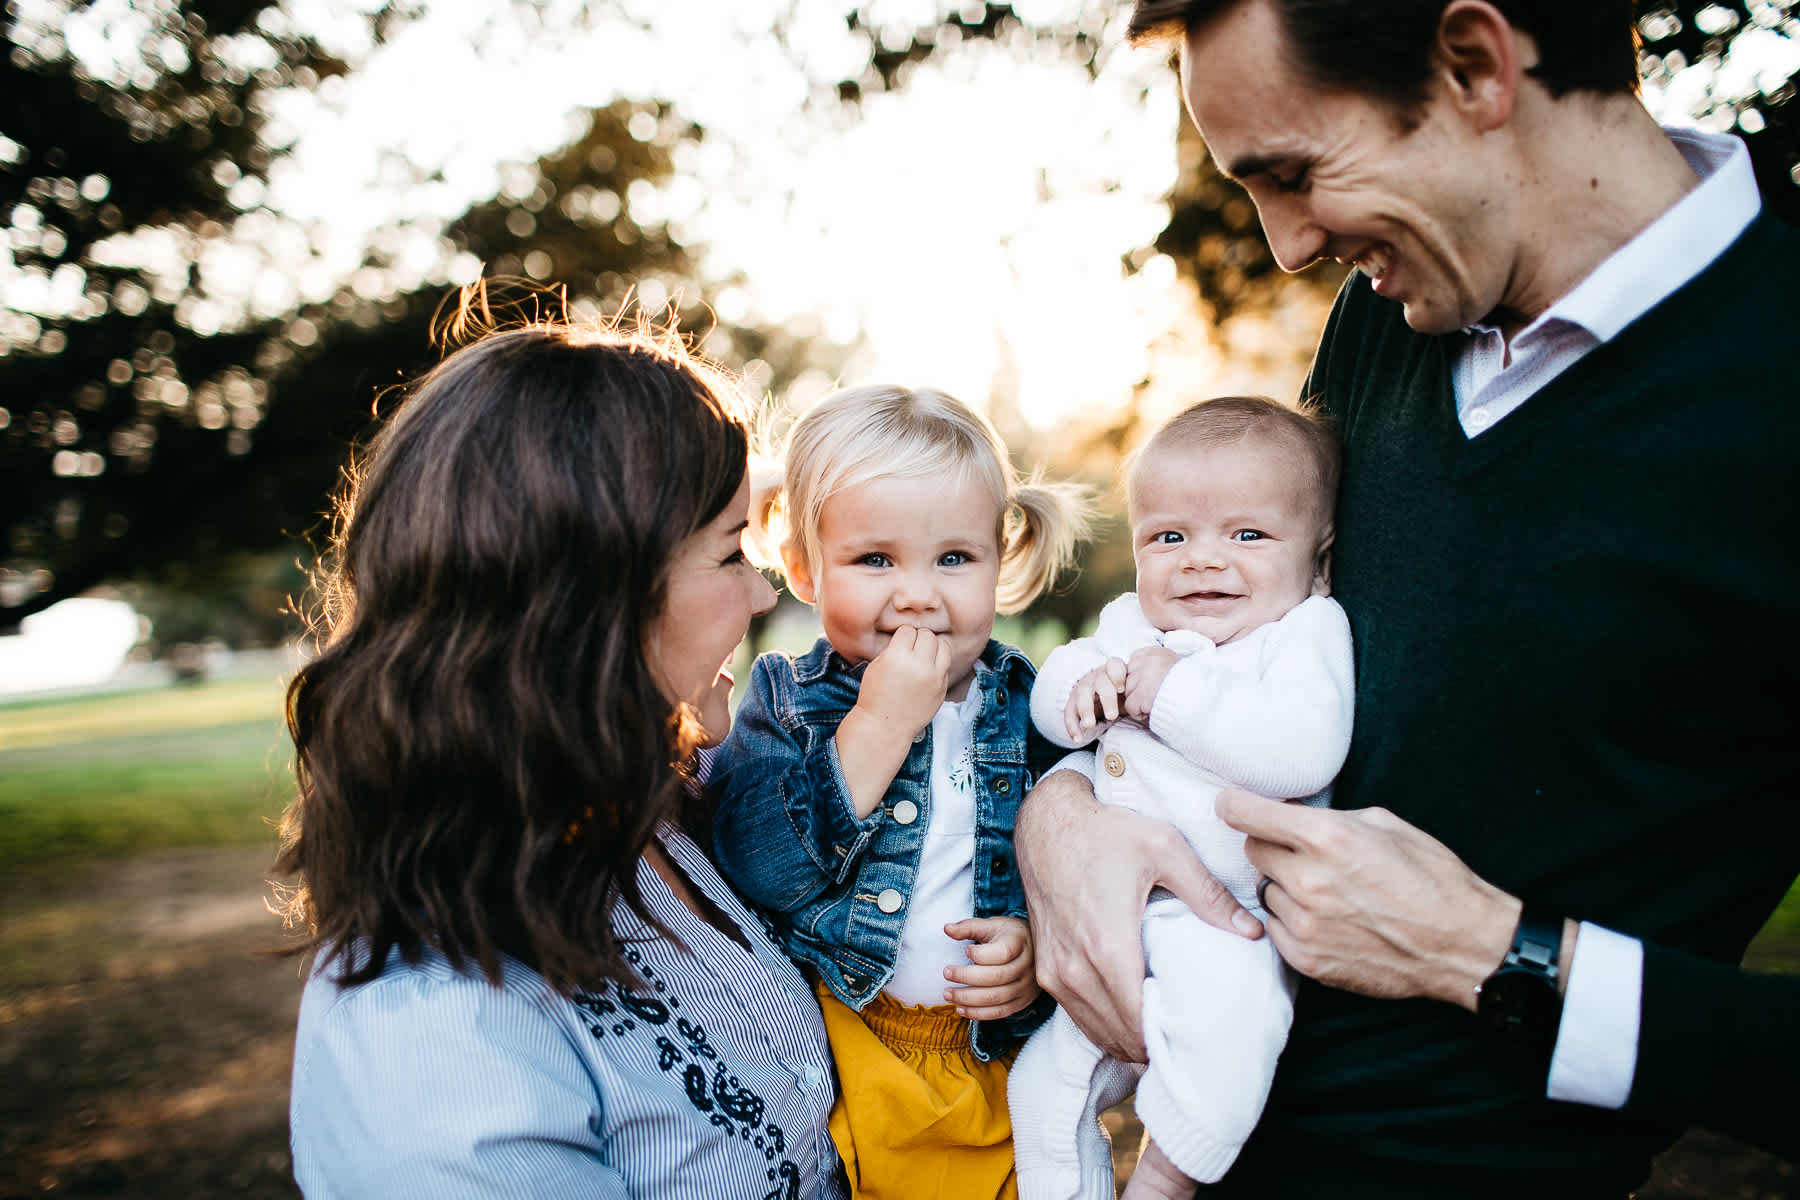 lake-merritt-oakland-ca-fall-sunset-family-session-5